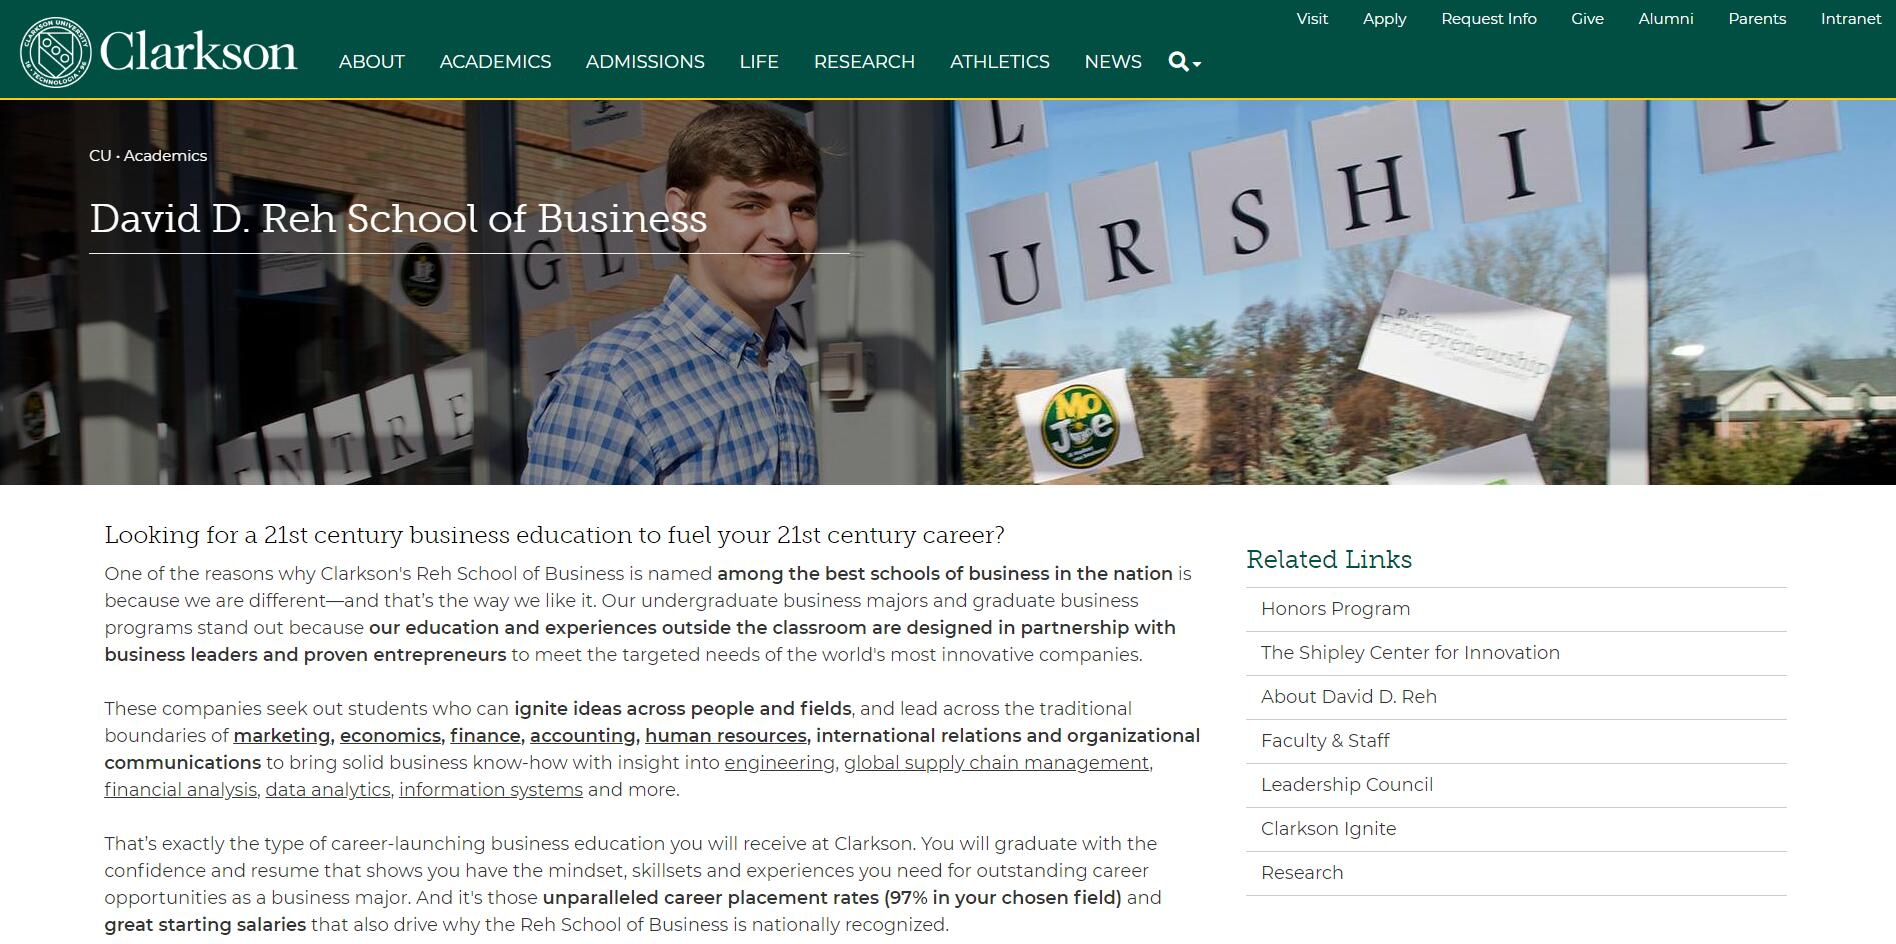 The School of Business at Clarkson University